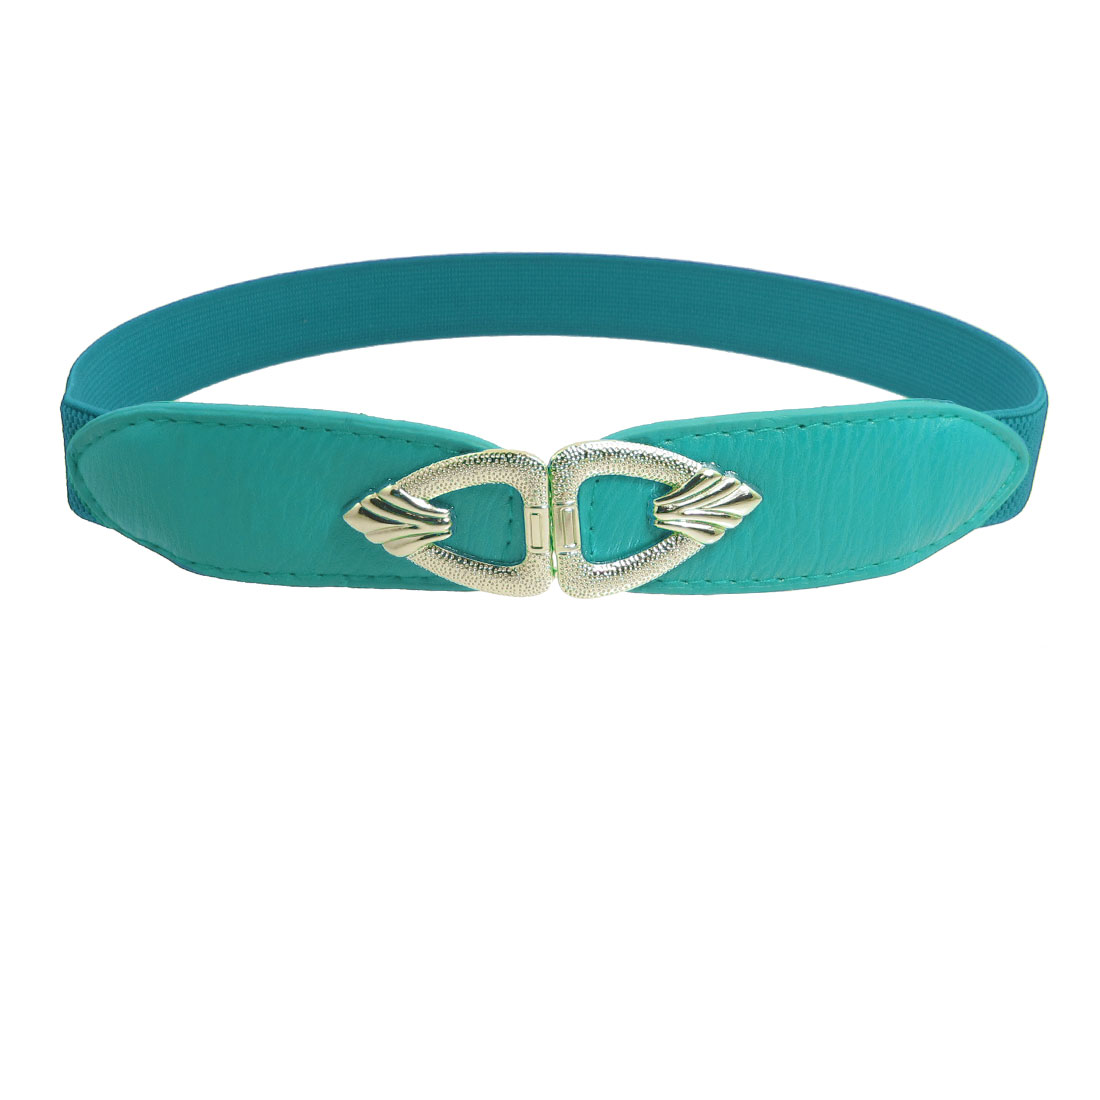 Lady Metal Interlock Buckle 2.5cm Wide Stretch Band Thin Waist Belt Teal Green